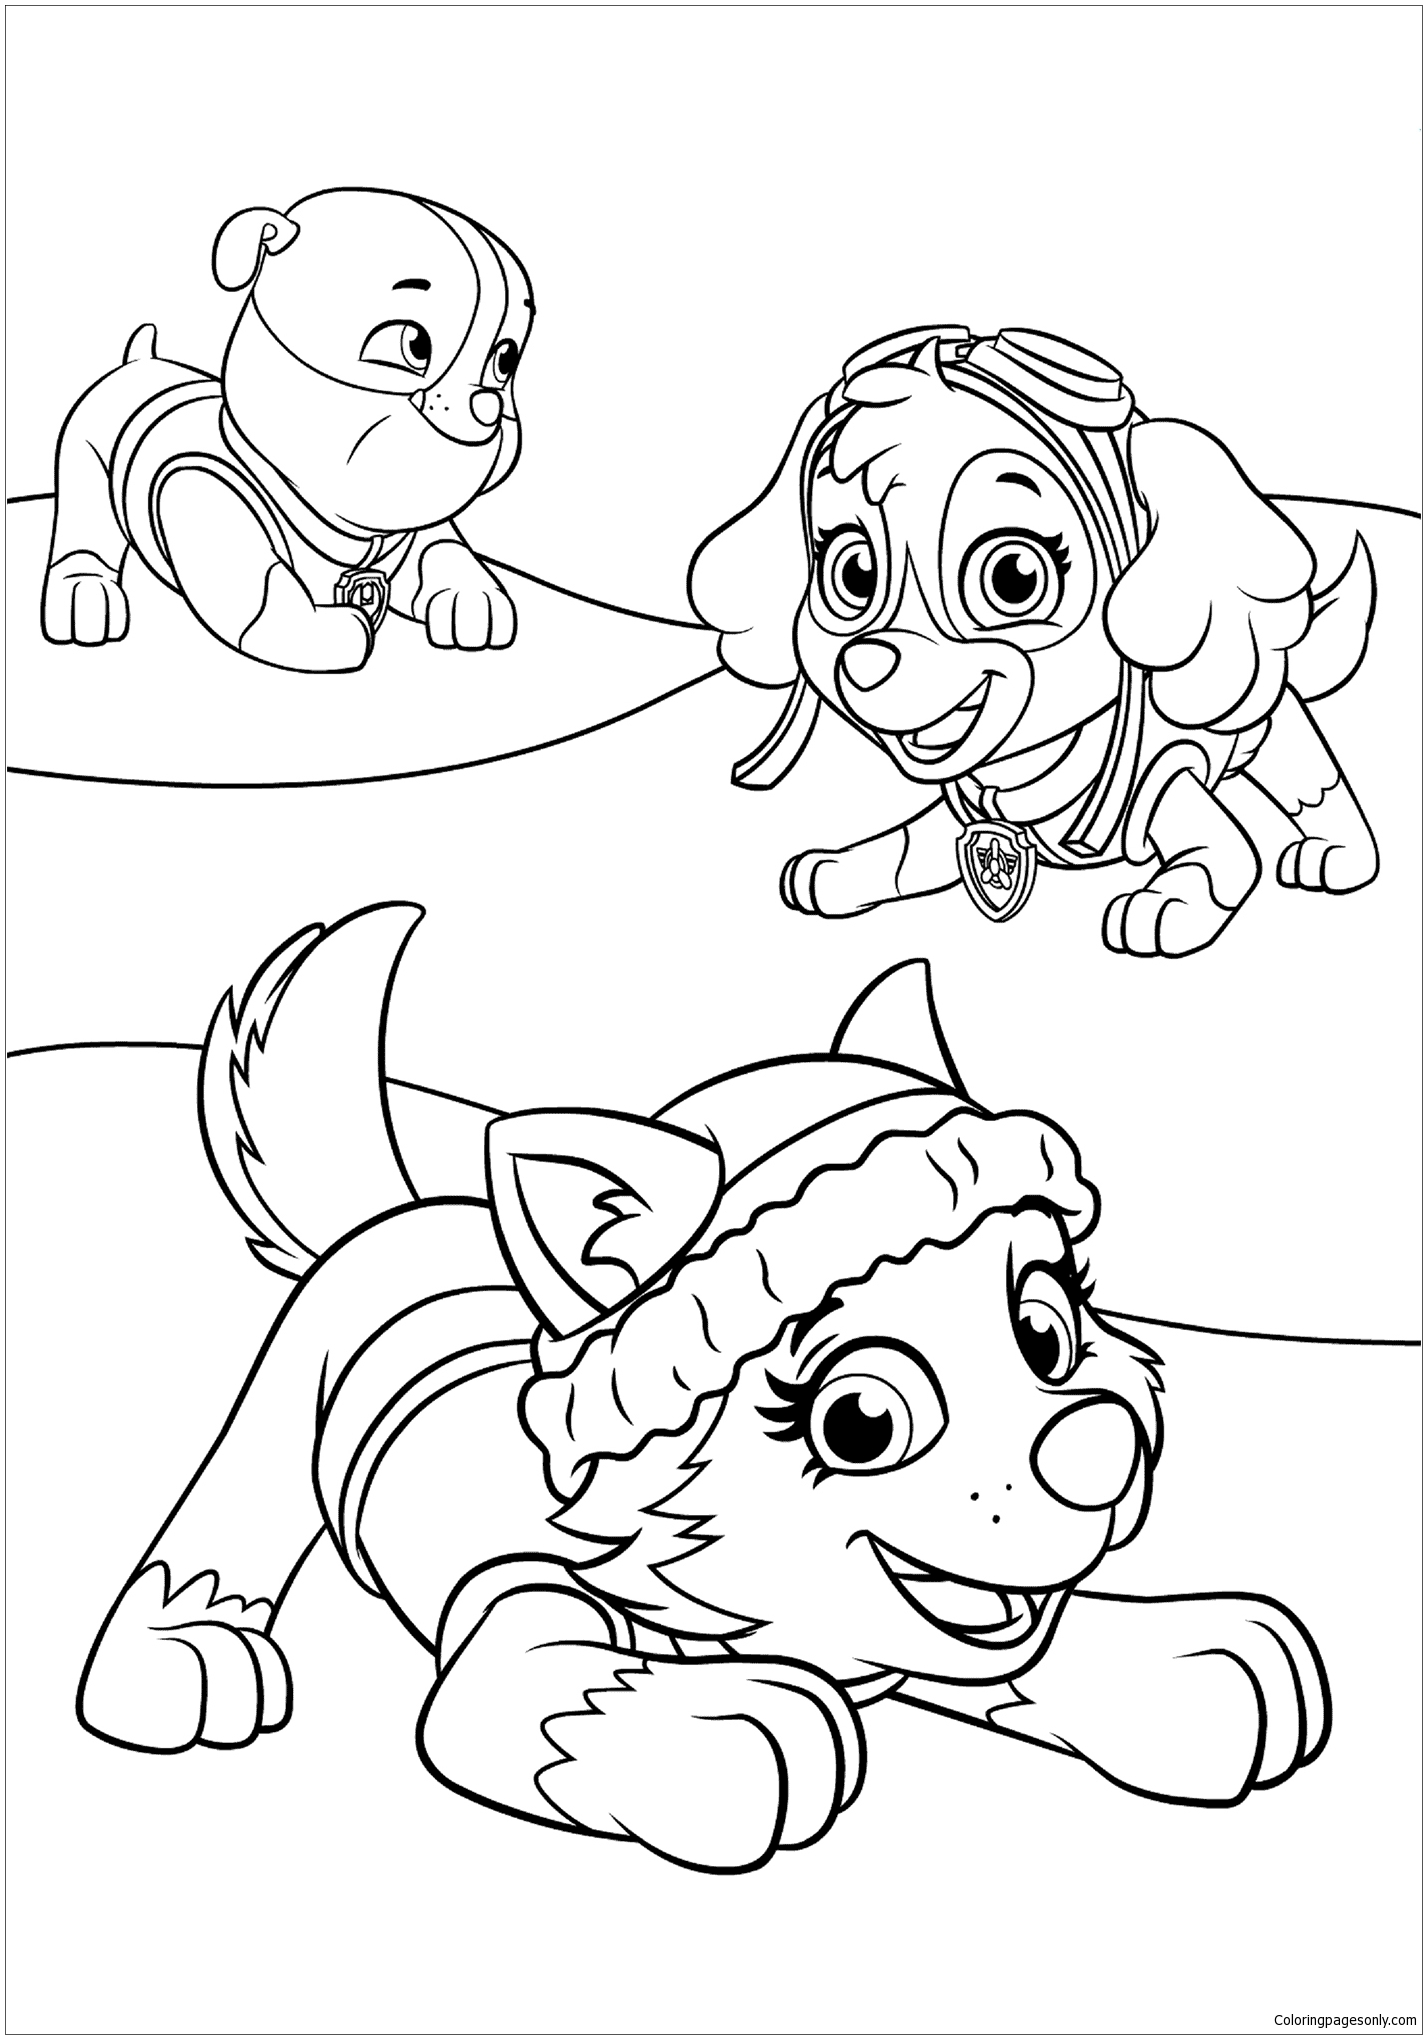 Paw Patrol 20 Coloring Page Free Coloring Pages Online